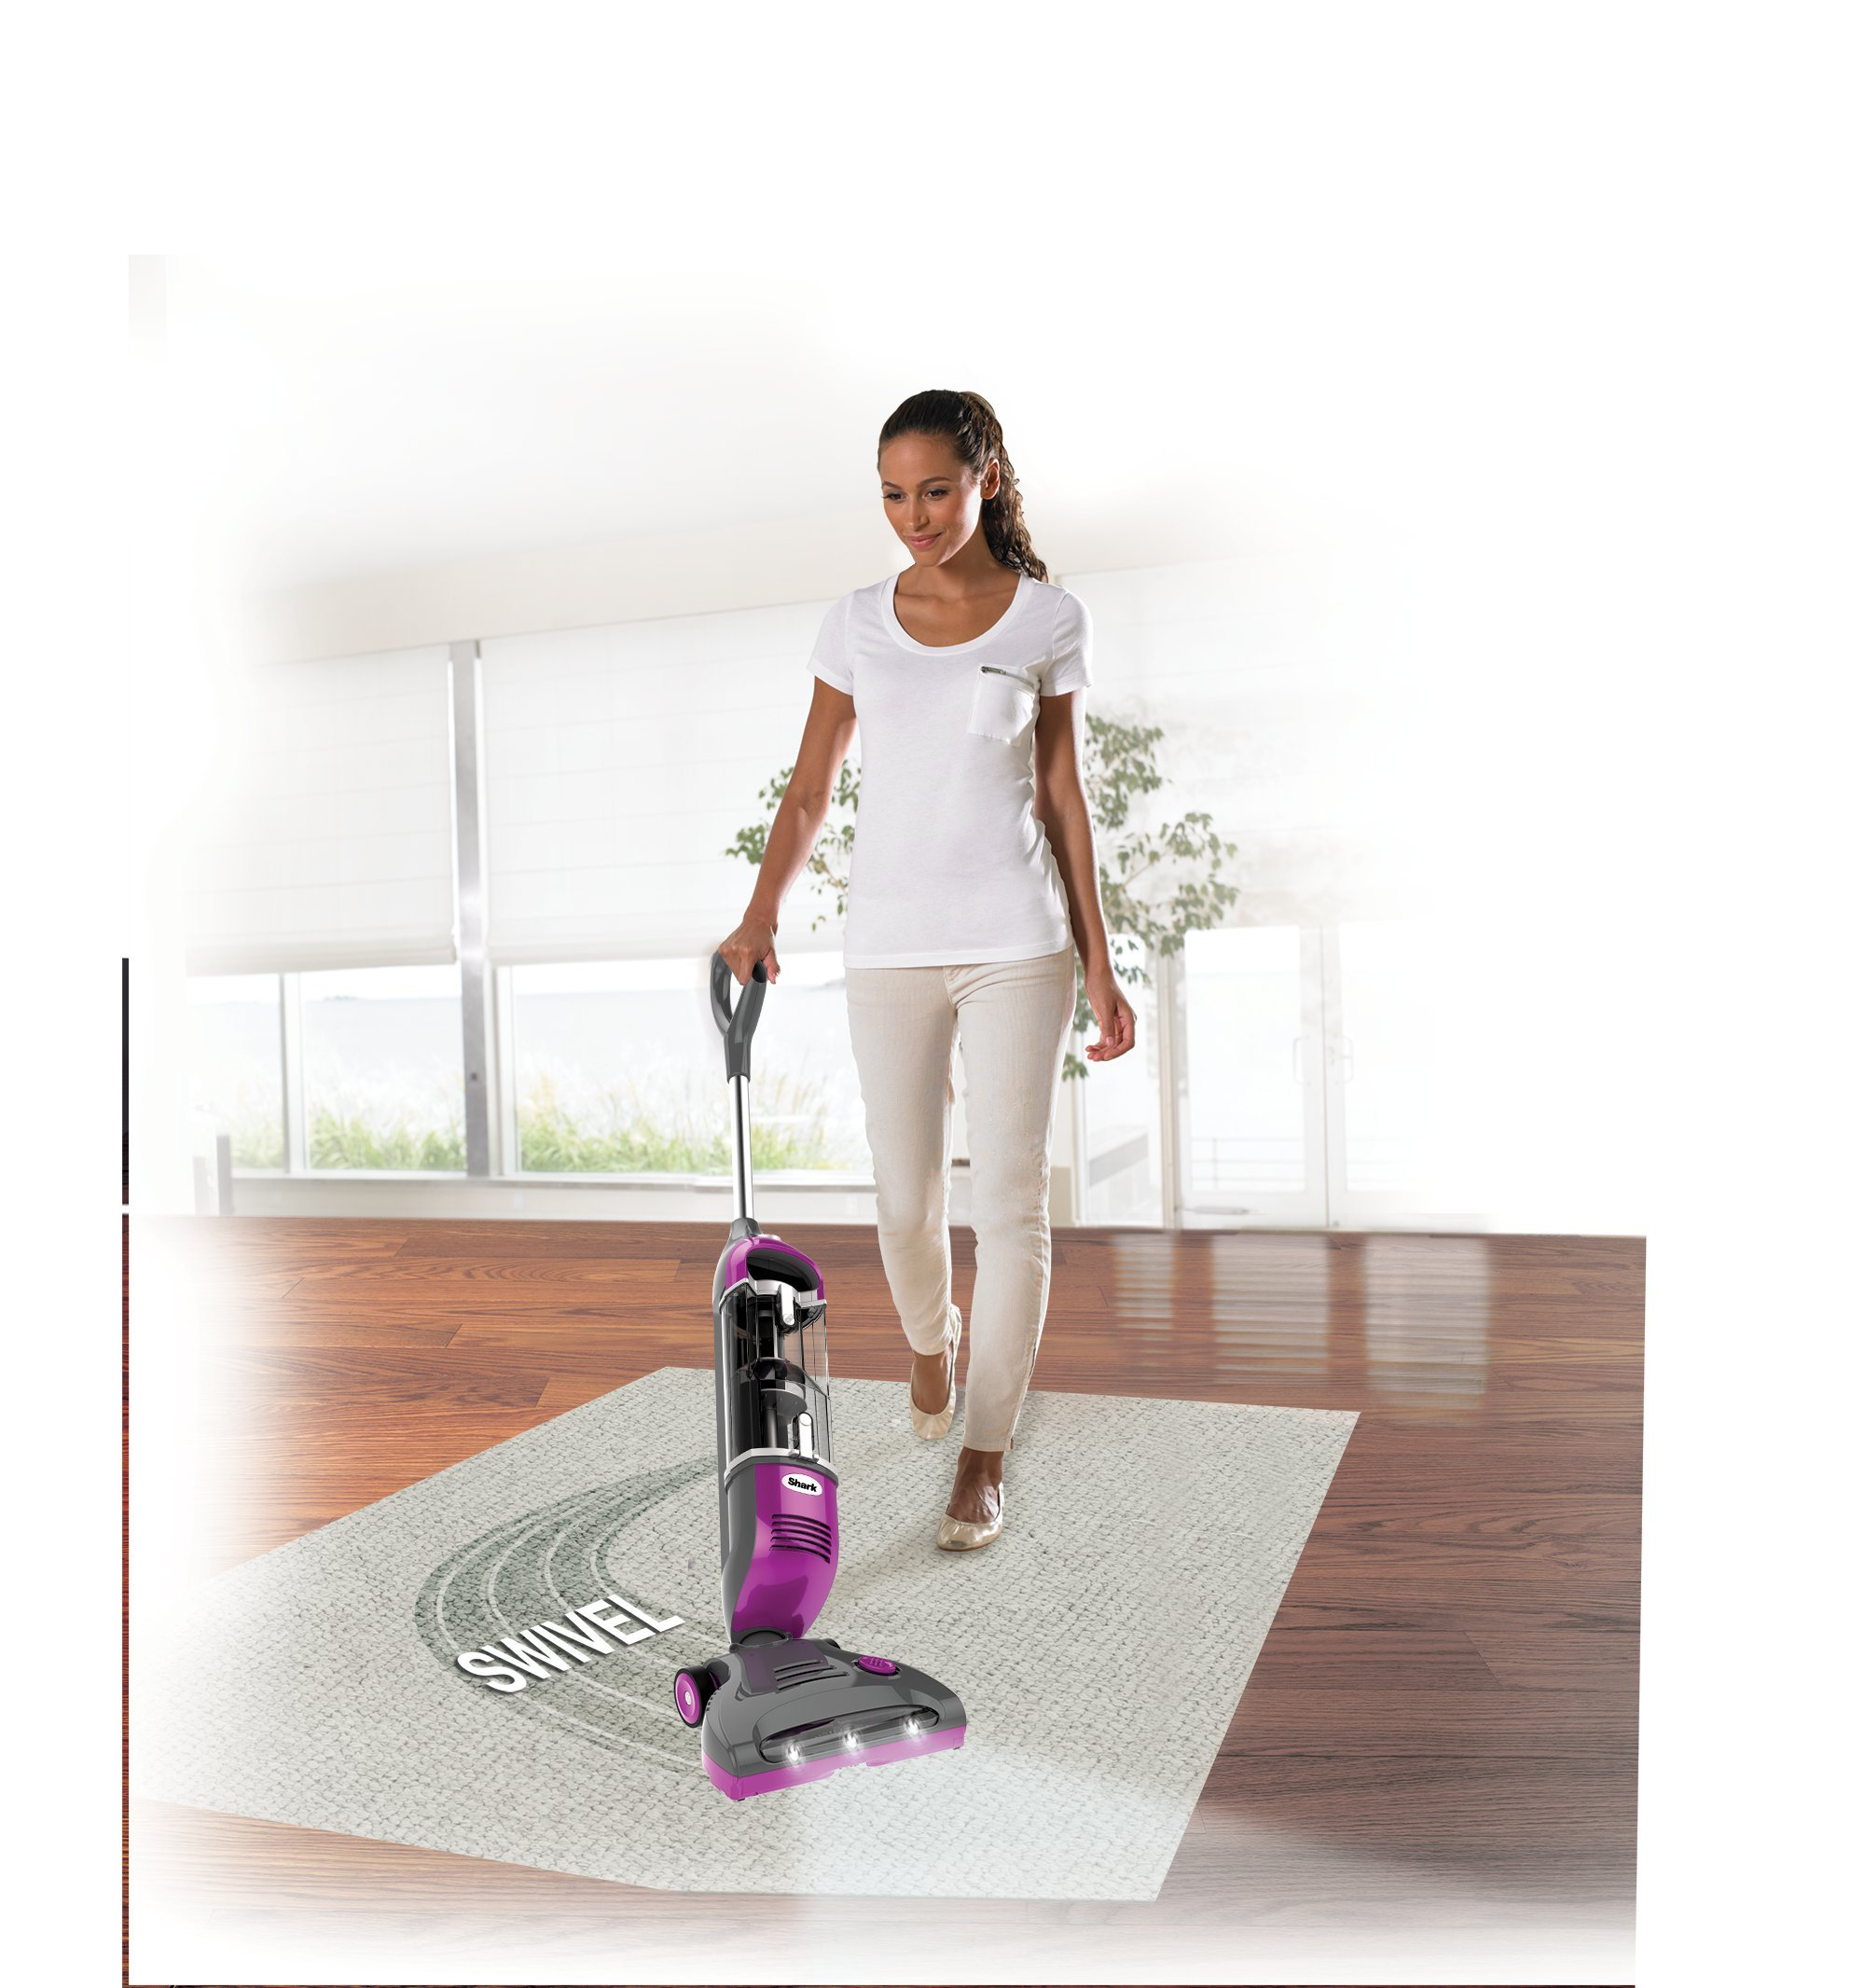 Shark Rotator Freestyle Stick Cordless Vacuum for Carpet, Hard Floor and Pet Hair Pickup with XL Dust Cup and 2-Speed Brushroll (SV1112), Fuchsia by SharkNinja (Image #3)